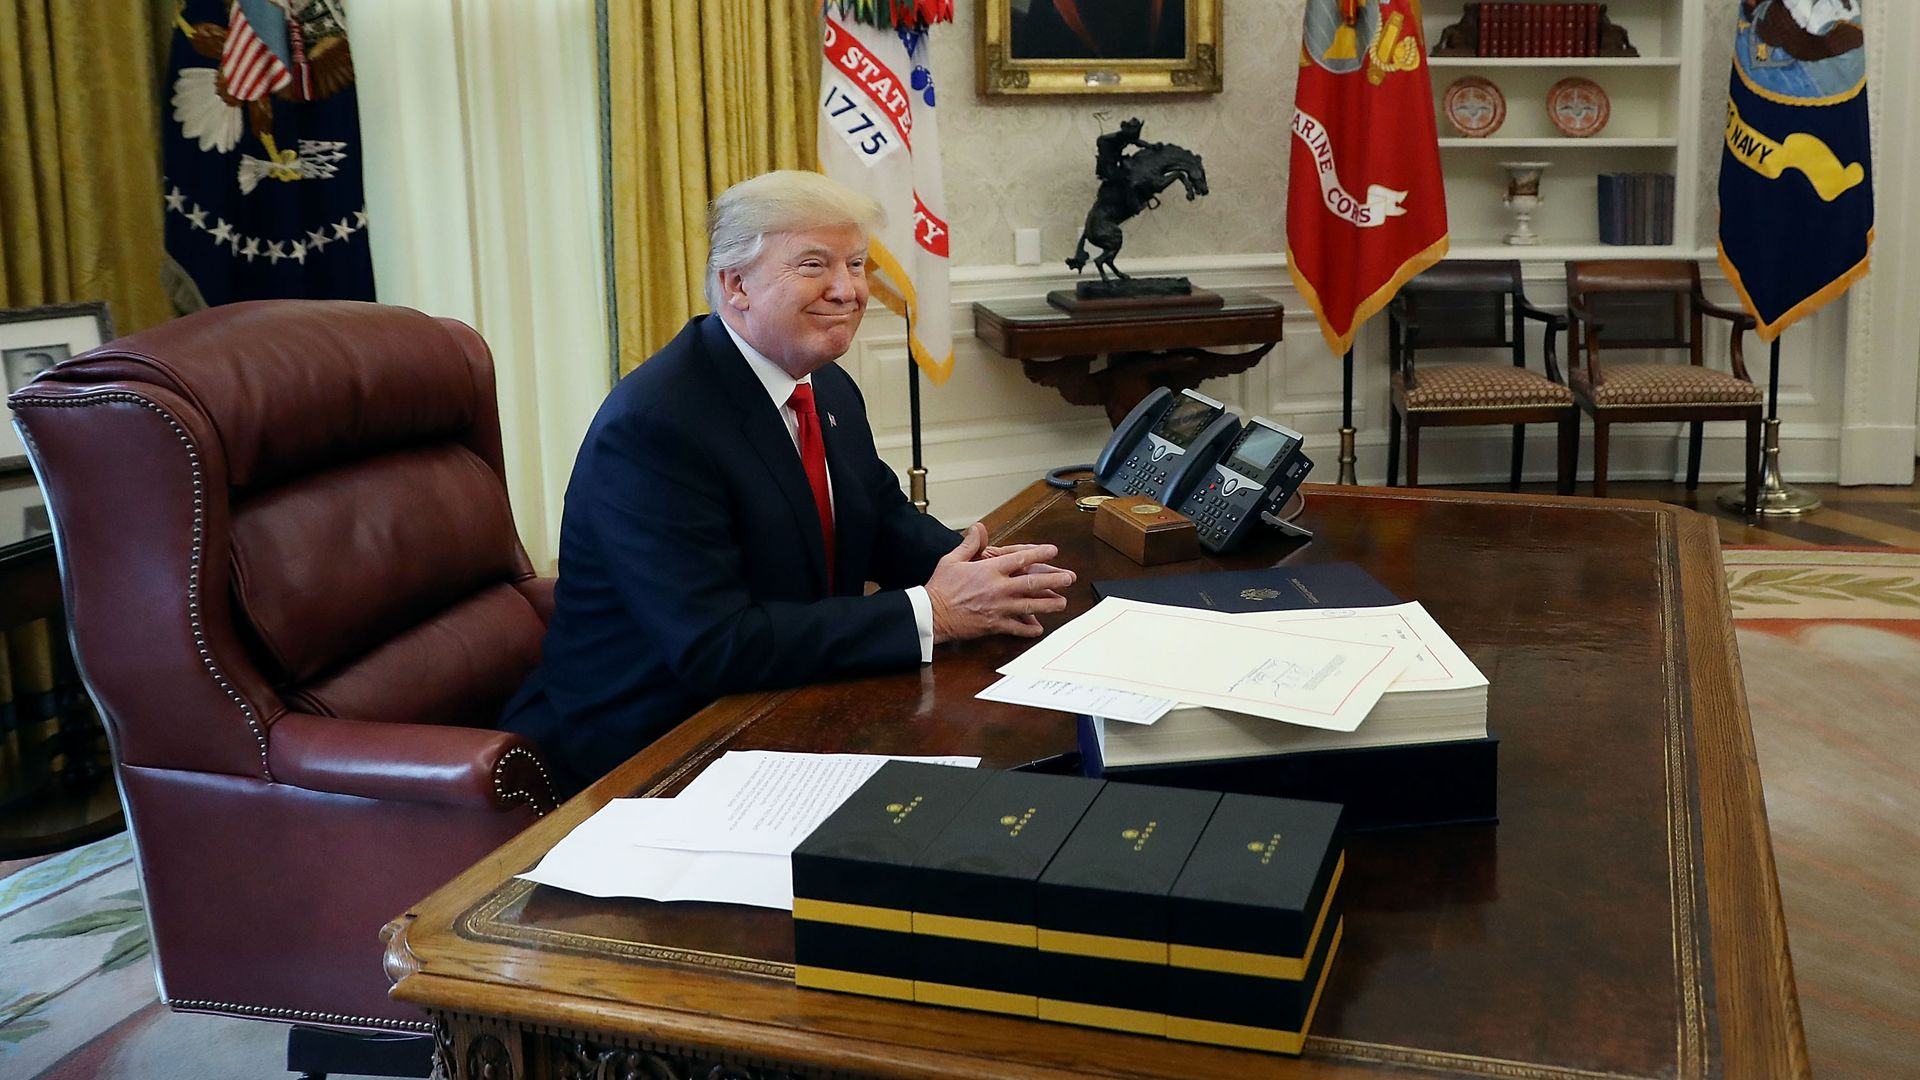 Trump smiles in the Oval Office